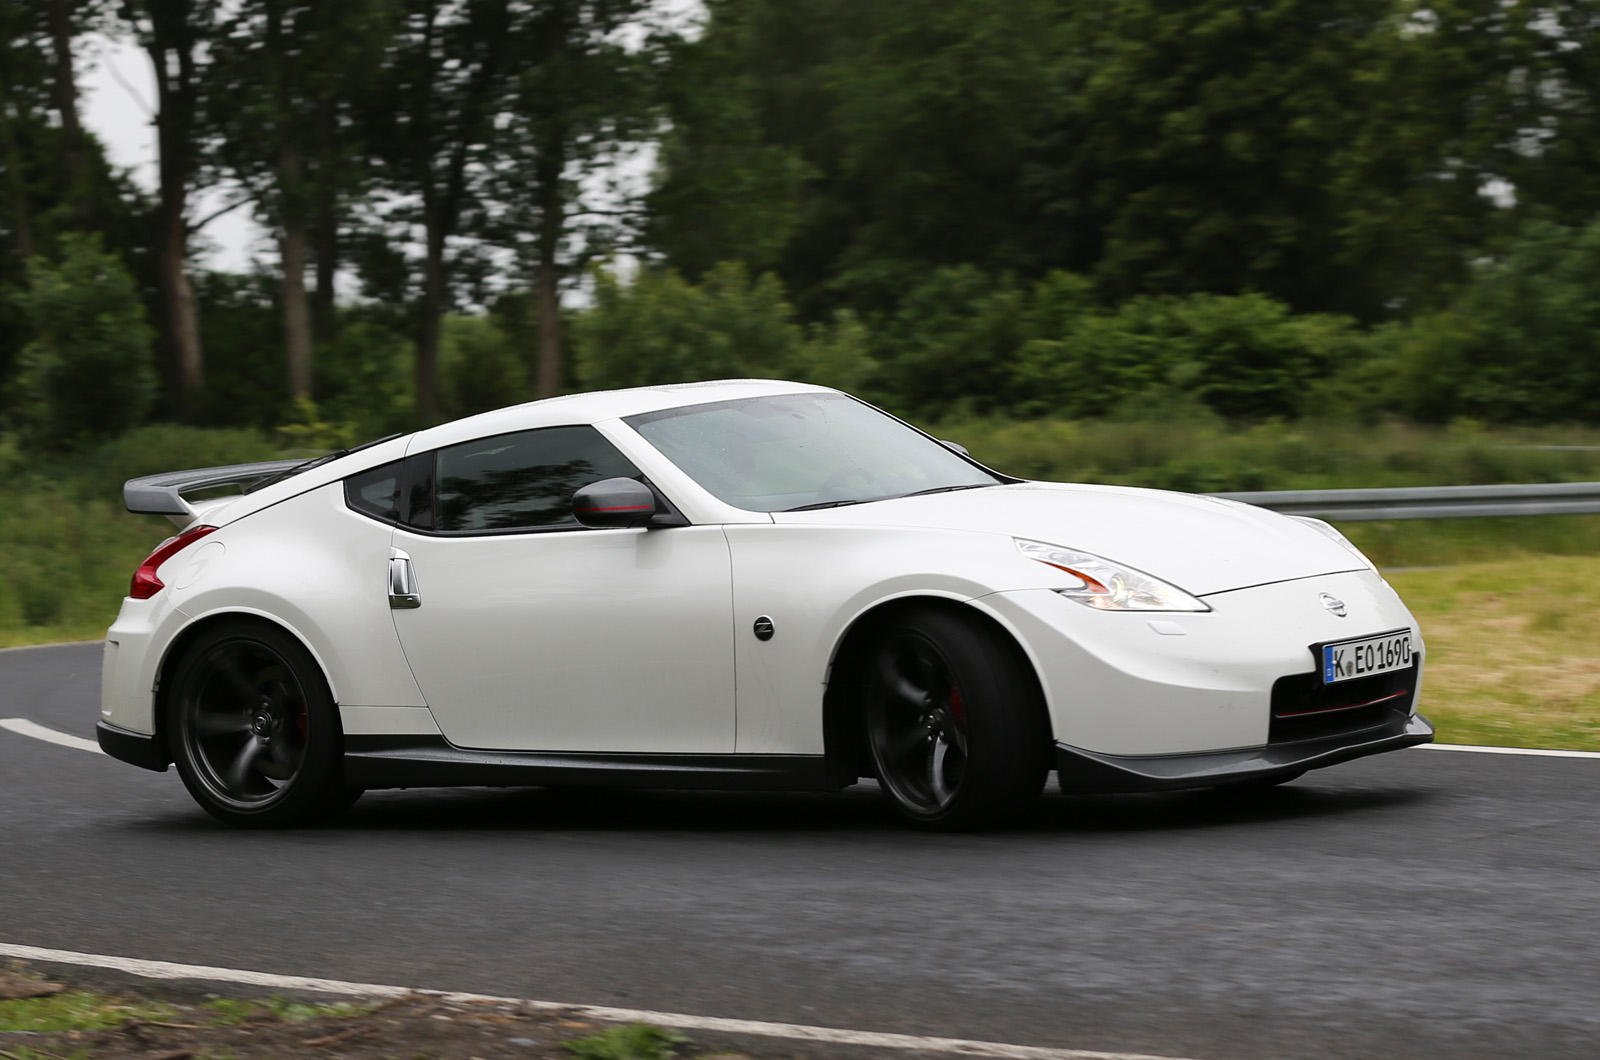 nissan 370z nismo 2015 wallpaper 2013 Nissan 370Z Nismo Wallpaper 1600x1060